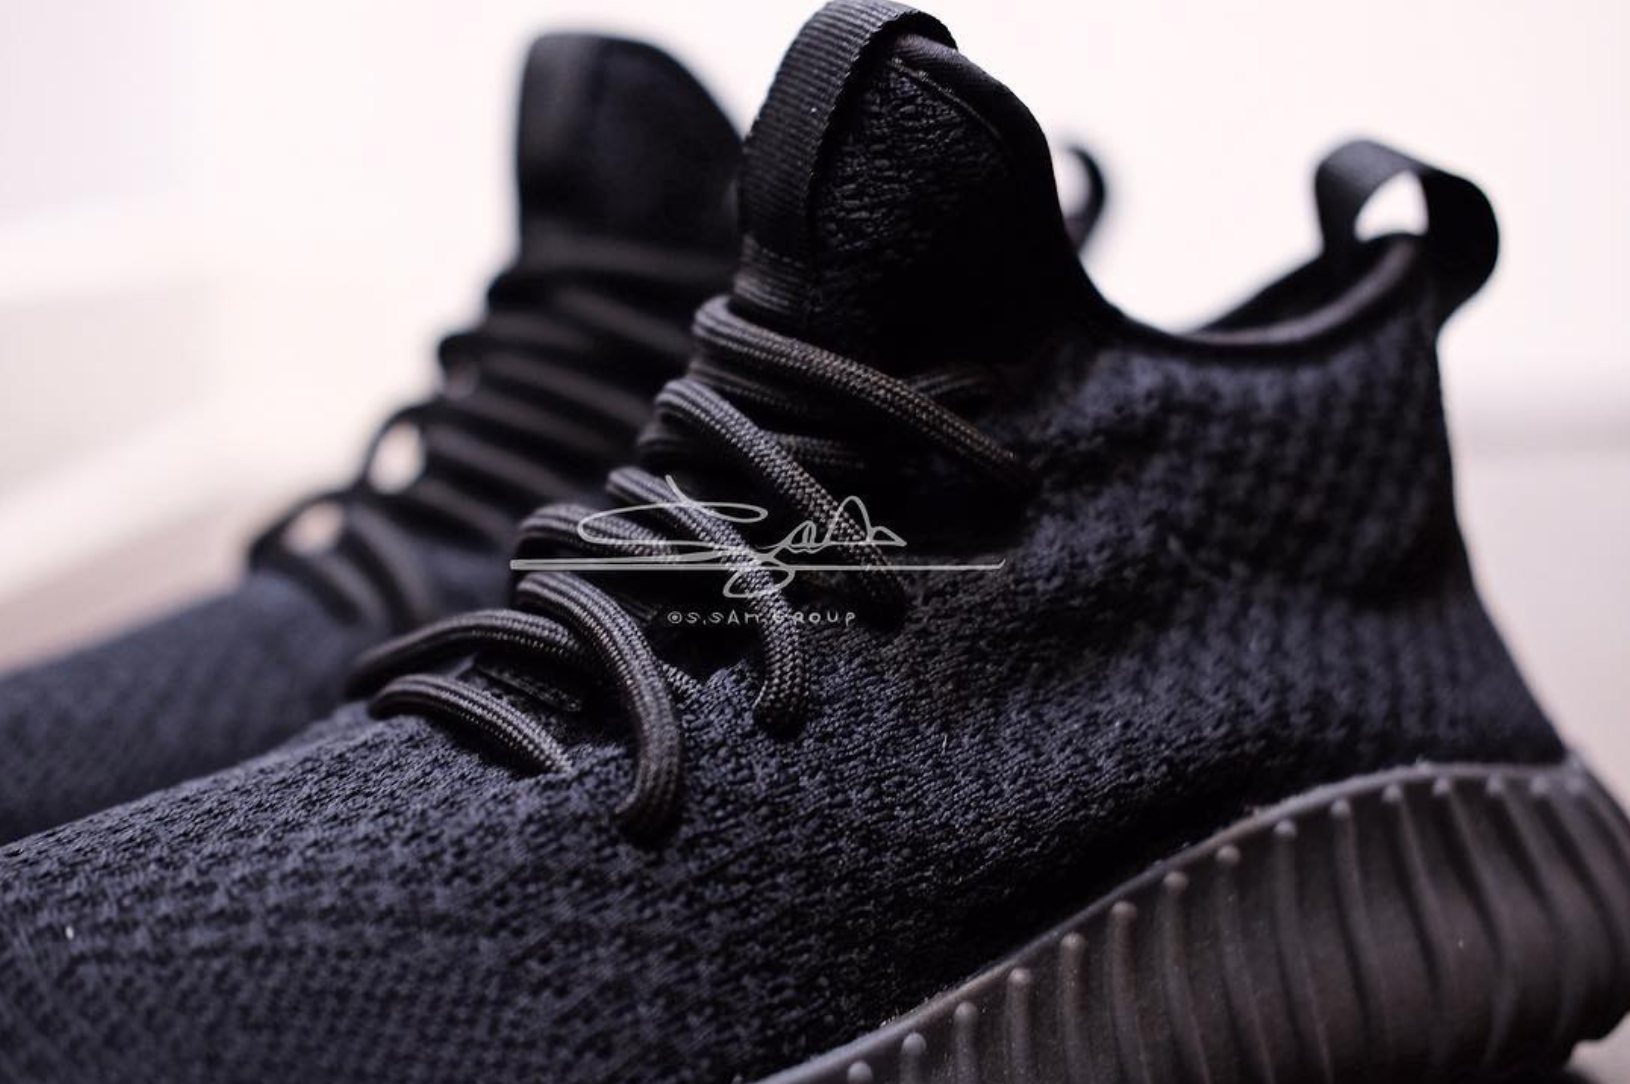 fbfe1837416 triple white adidas yeezy boost 650 cheap black white and red shoes